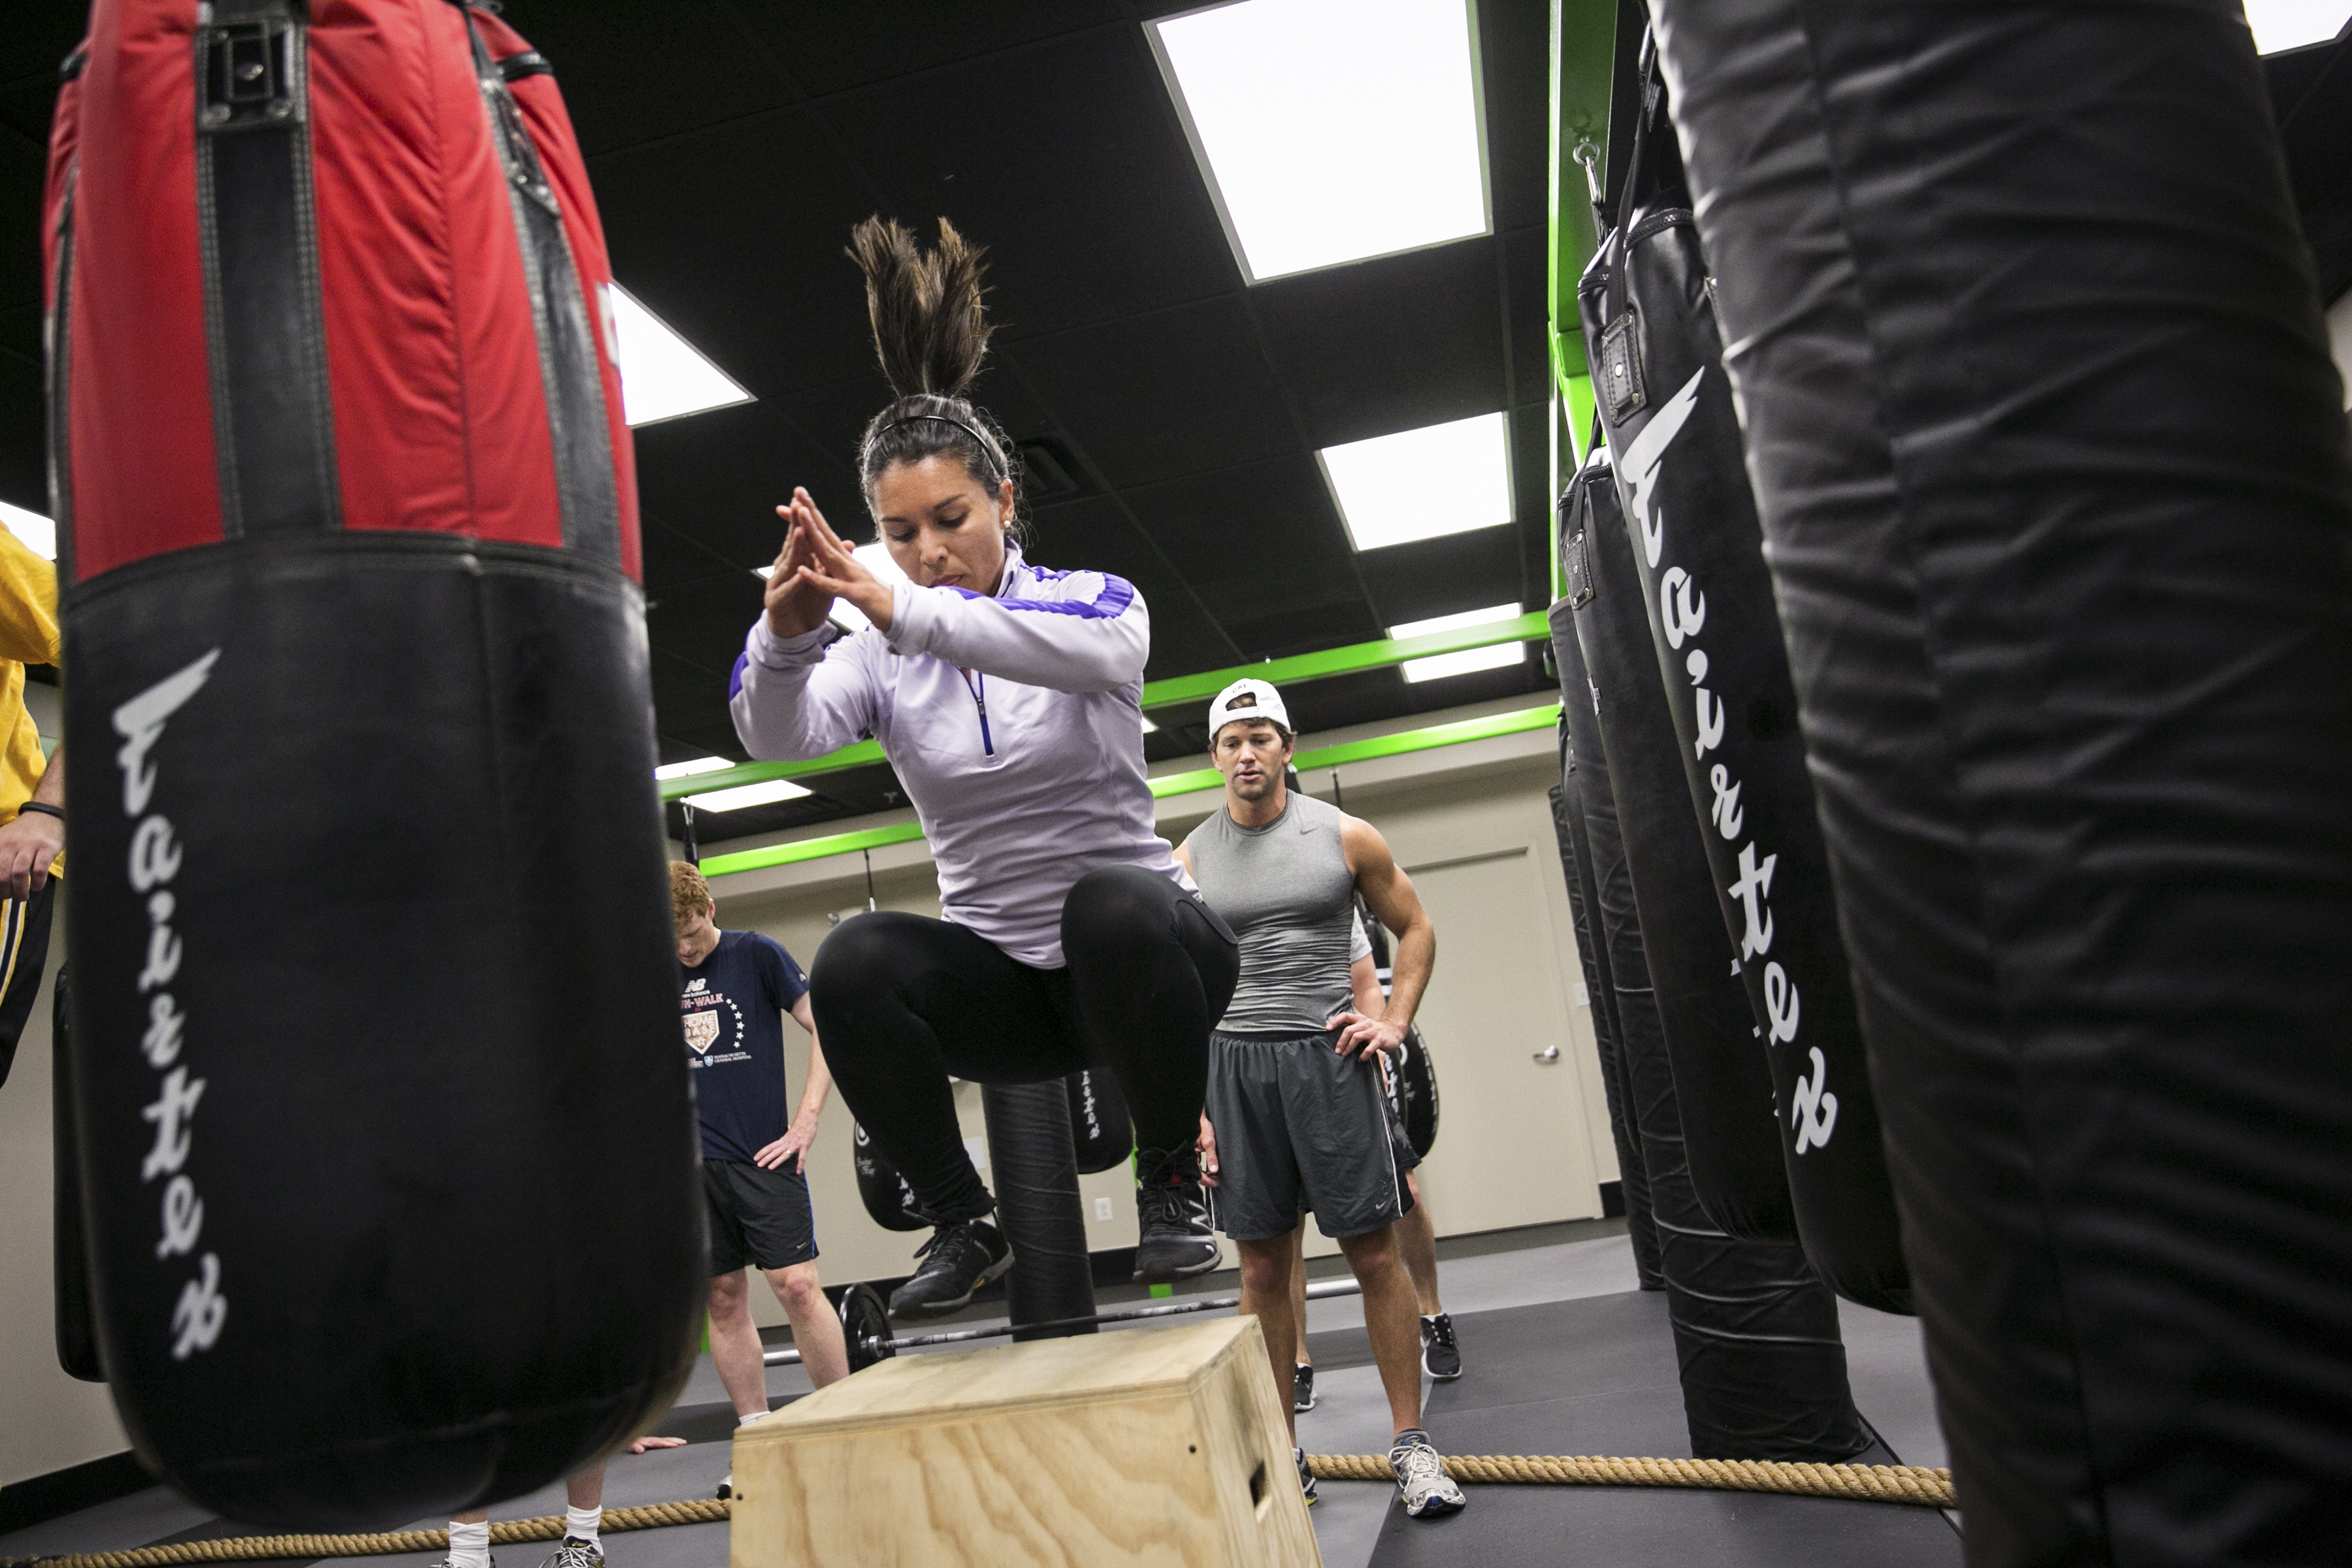 Rep. Tulsi Gabbard, D-Hawaii, does a box jump as Rep. Aaron Schock, R-Ill., looks on, at DCBFit Gym in Washington, D.C., during an intense workout routine led by Rep. Markwayne Mullin, R-Okla.